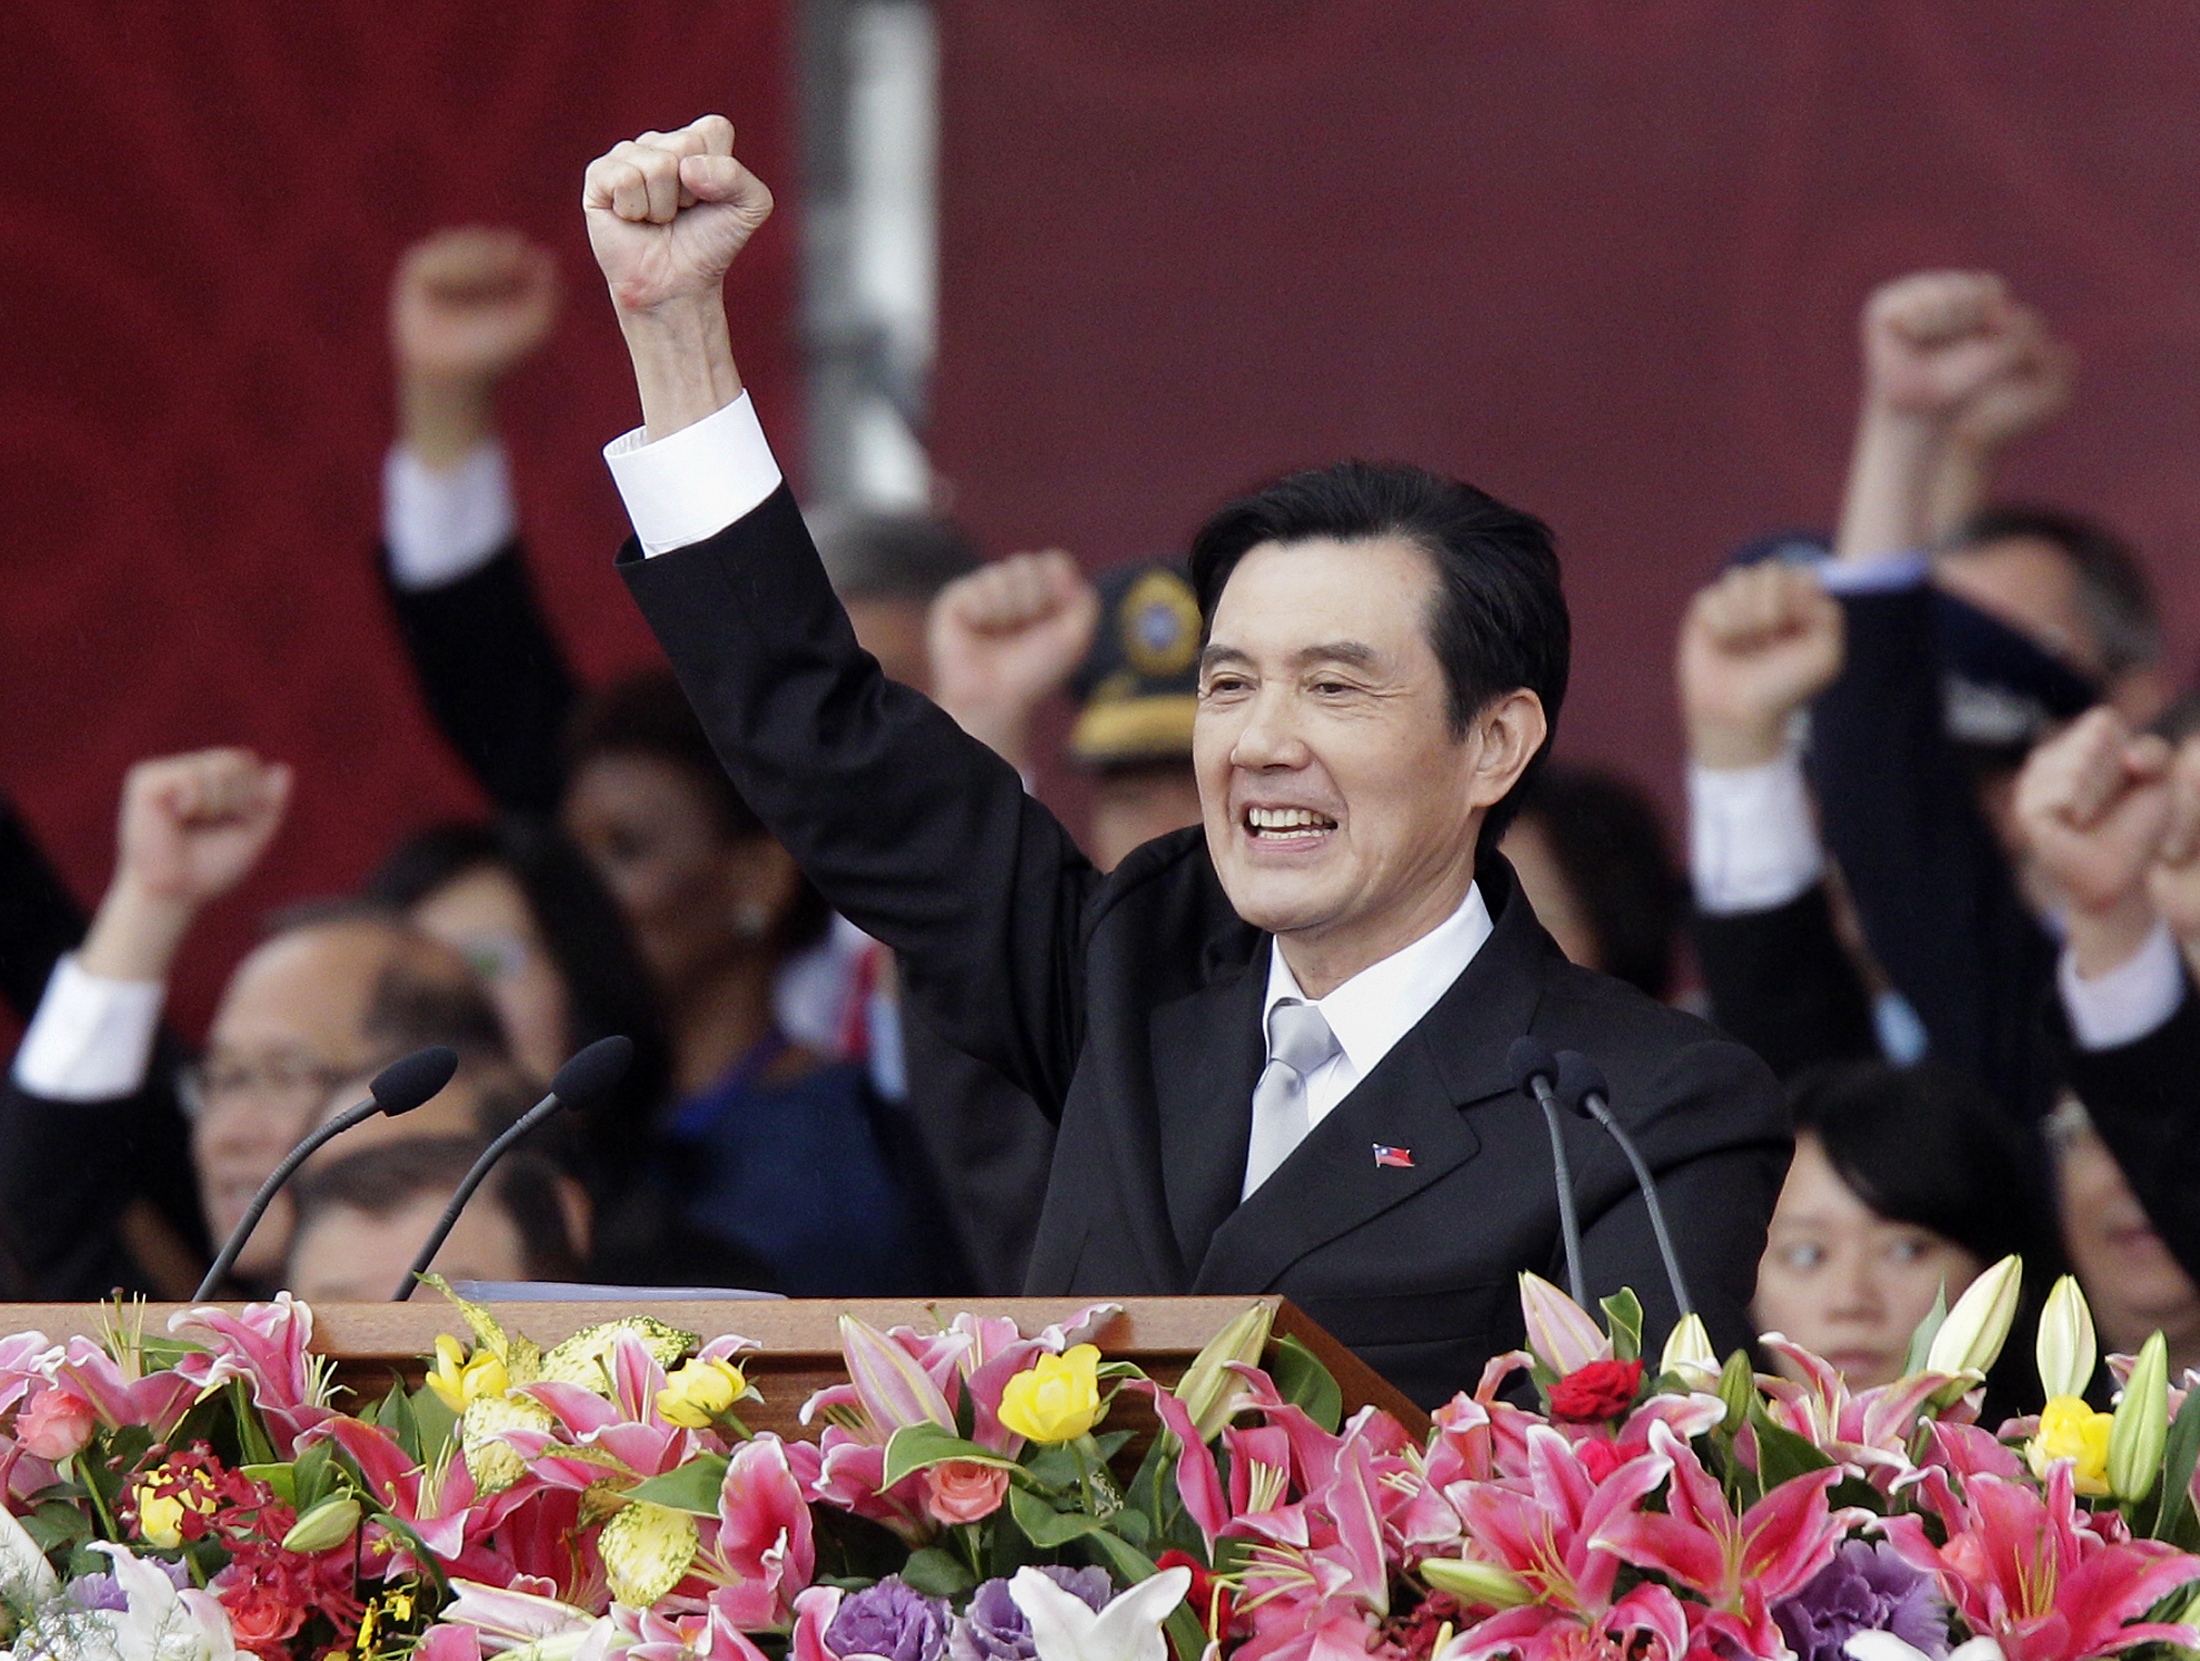 Taiwan's President Ma Ying-jeou raises his fist after giving a speech during National Day celebrations in front of the presidential office in Taipei October 10, 2012.